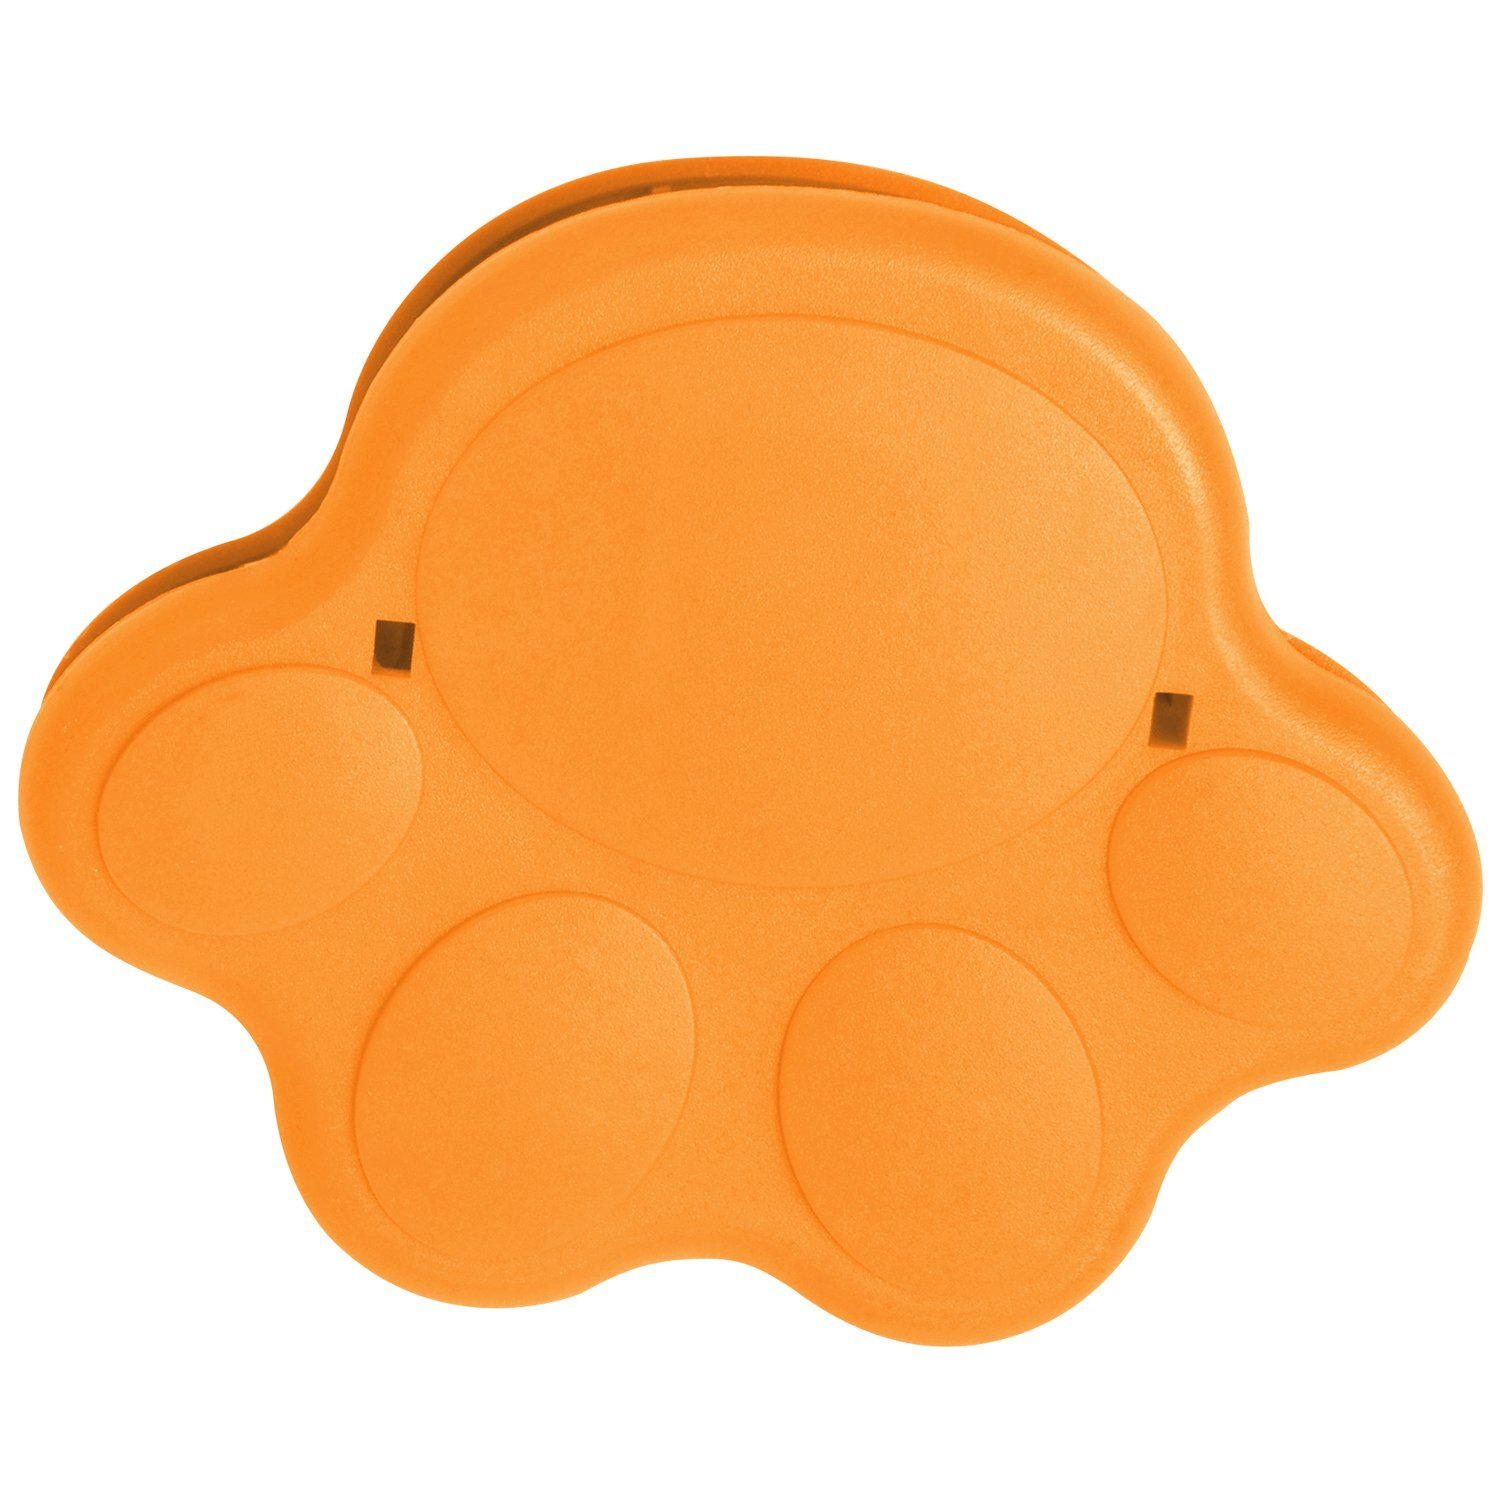 Paw Shaped Memo and Chip Clip